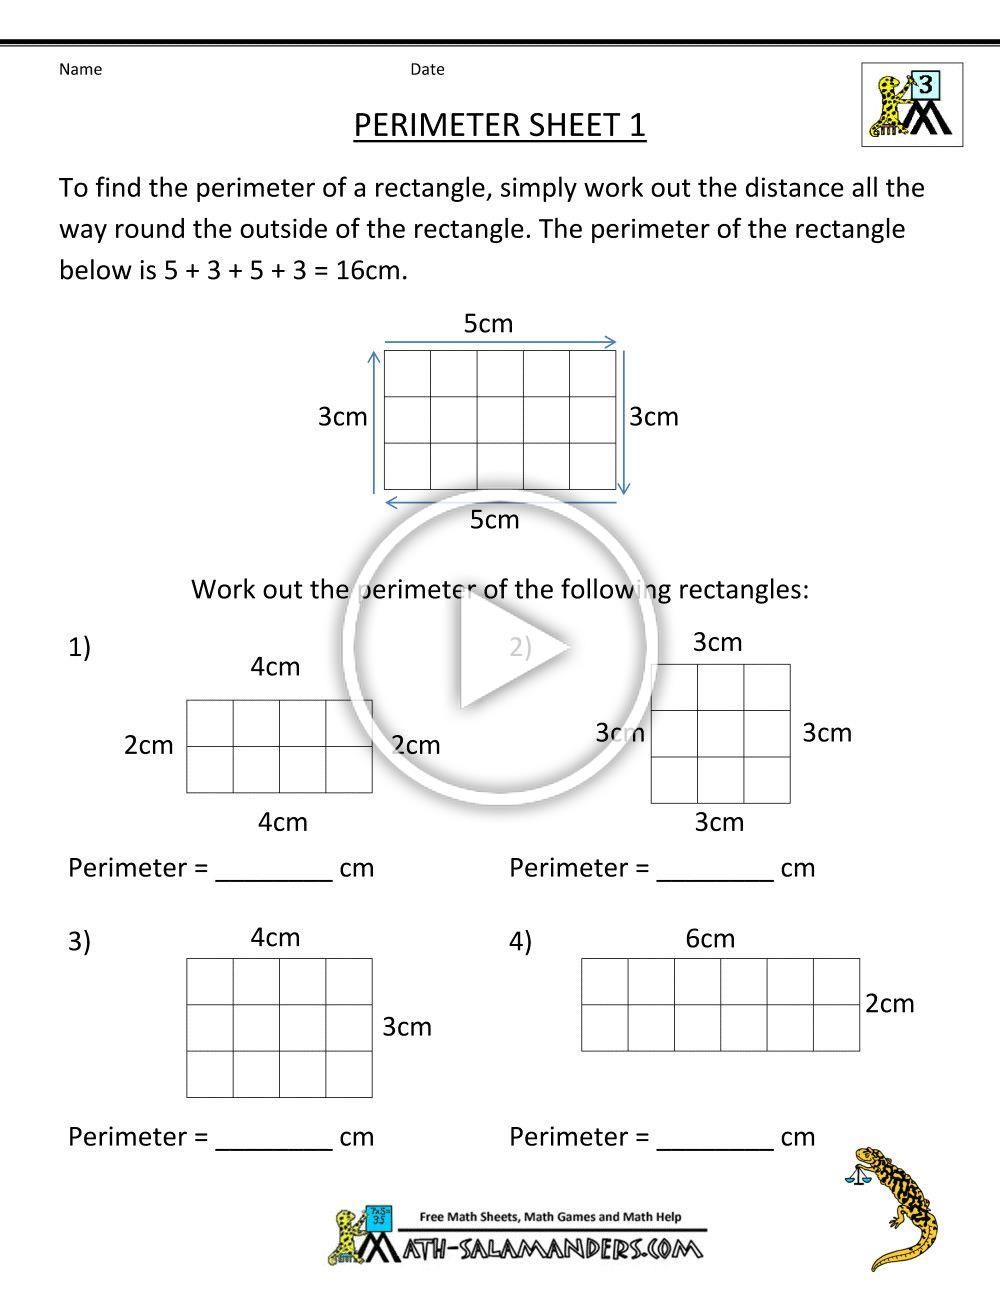 small resolution of 2 Capacity Worksheets Grade 2 free 3rd grade math worksheets perimeter 1 √  Capacity Worksheets Grade 2 . 2 Capacity Worksheets Grade 2 . Inches  Measurement Work… in 2020